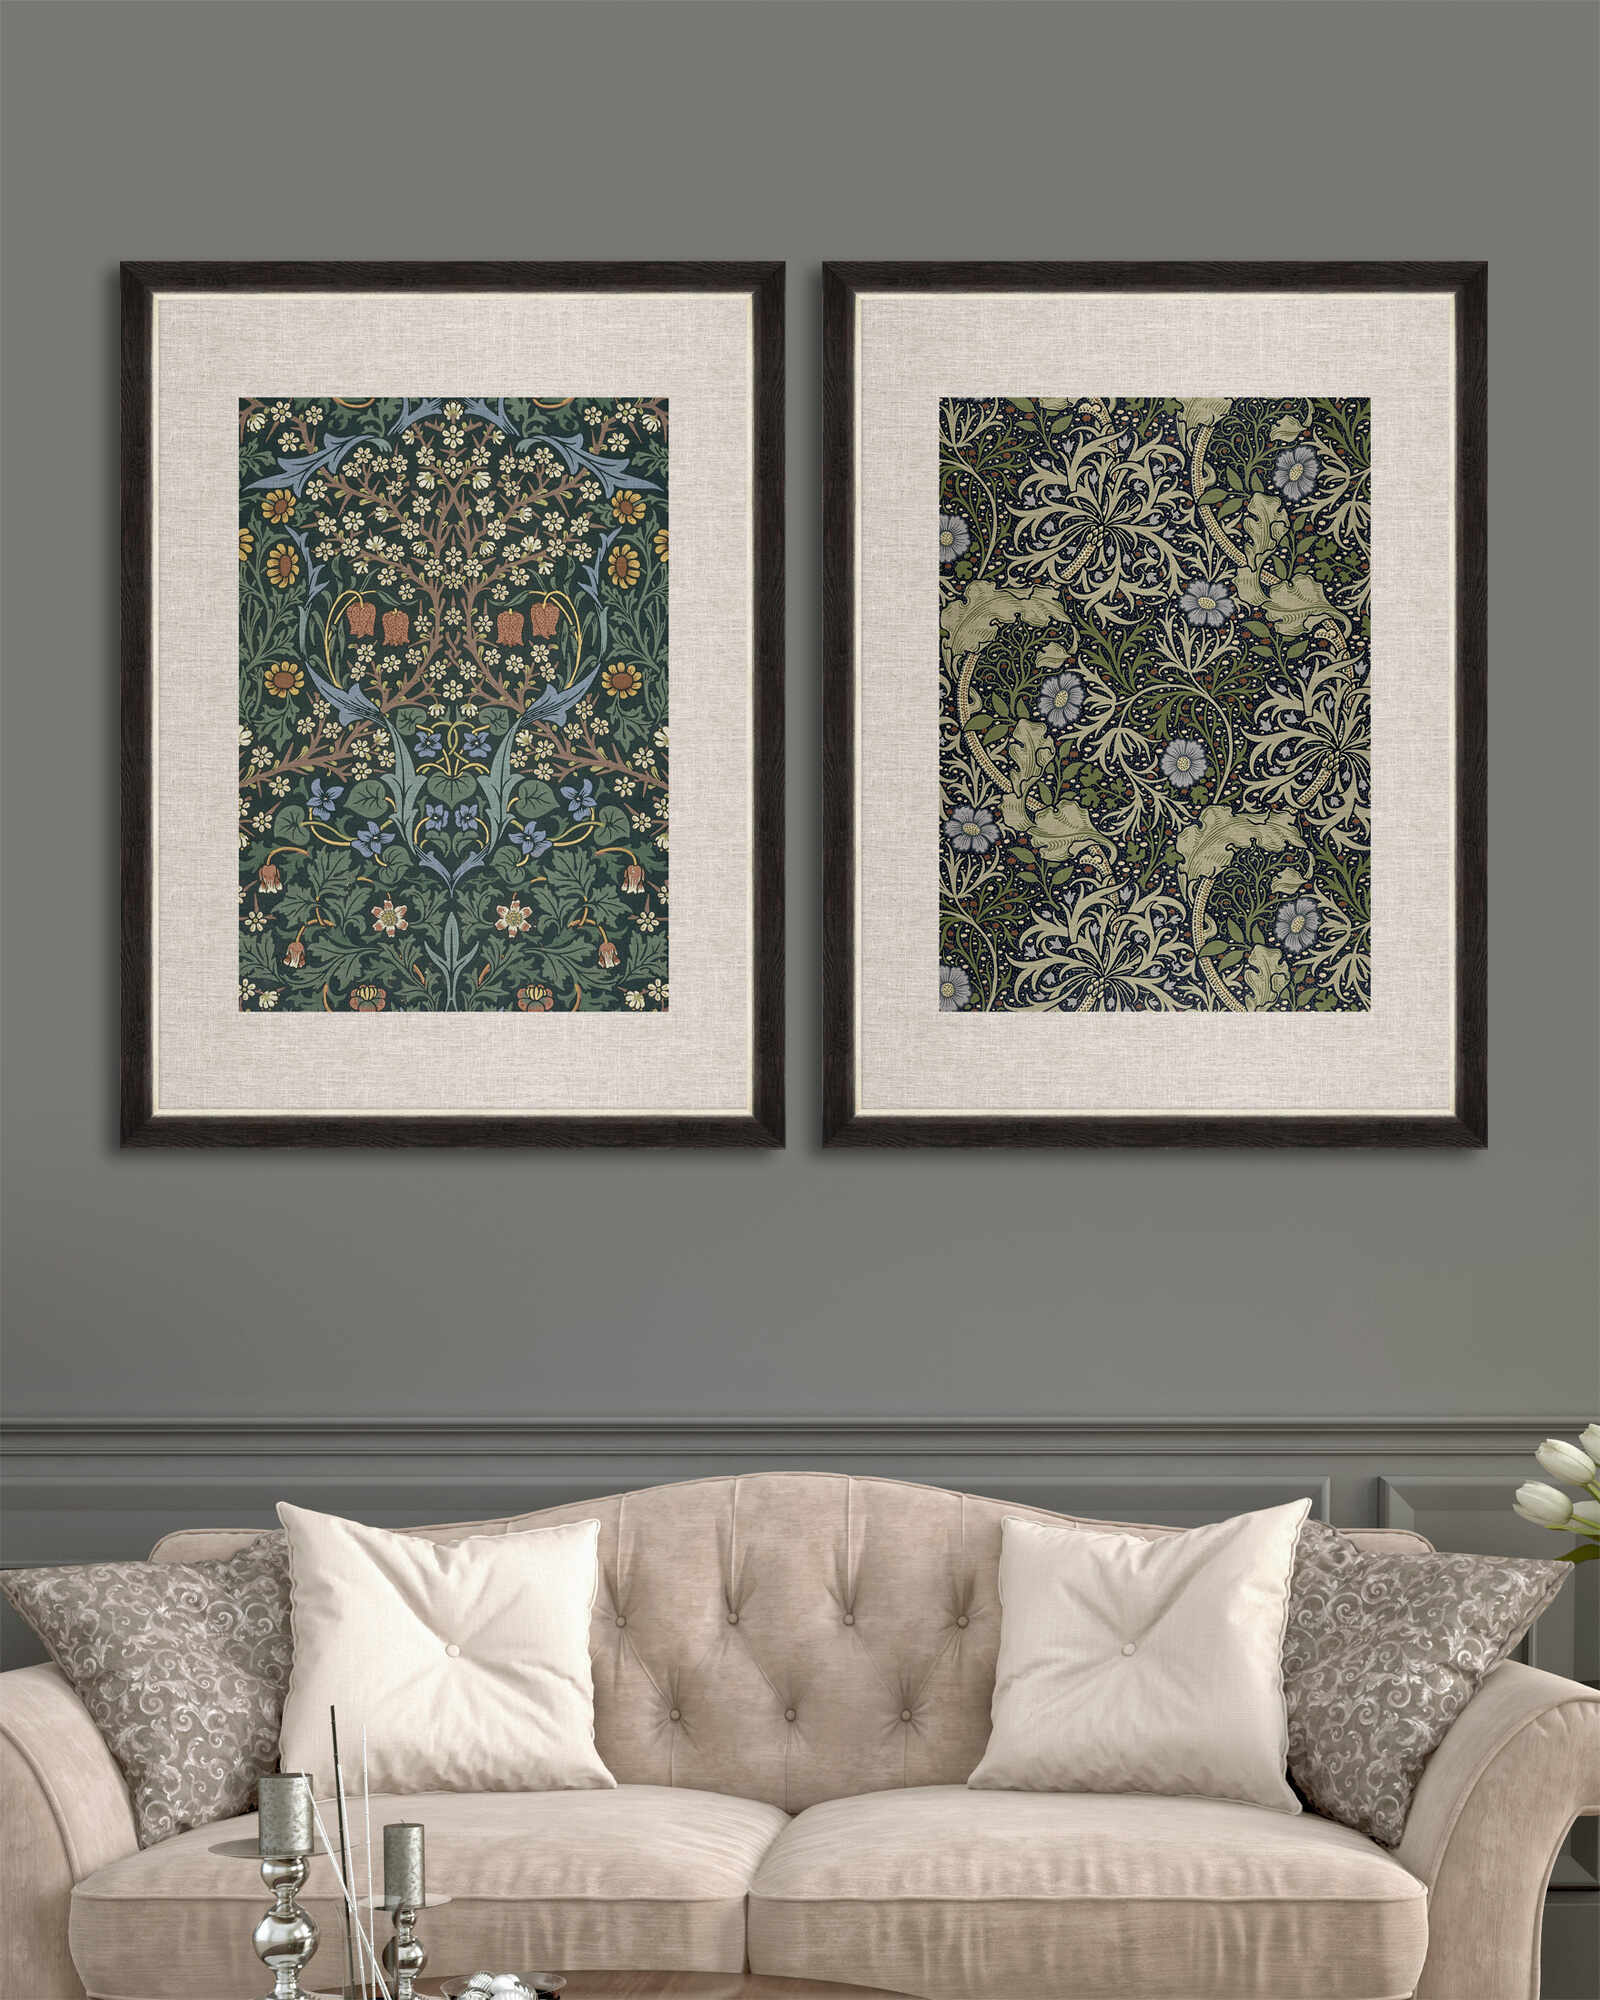 Tablou 2 piese Framed Linen Chinese Floral I & II la pret 1072.17 lei